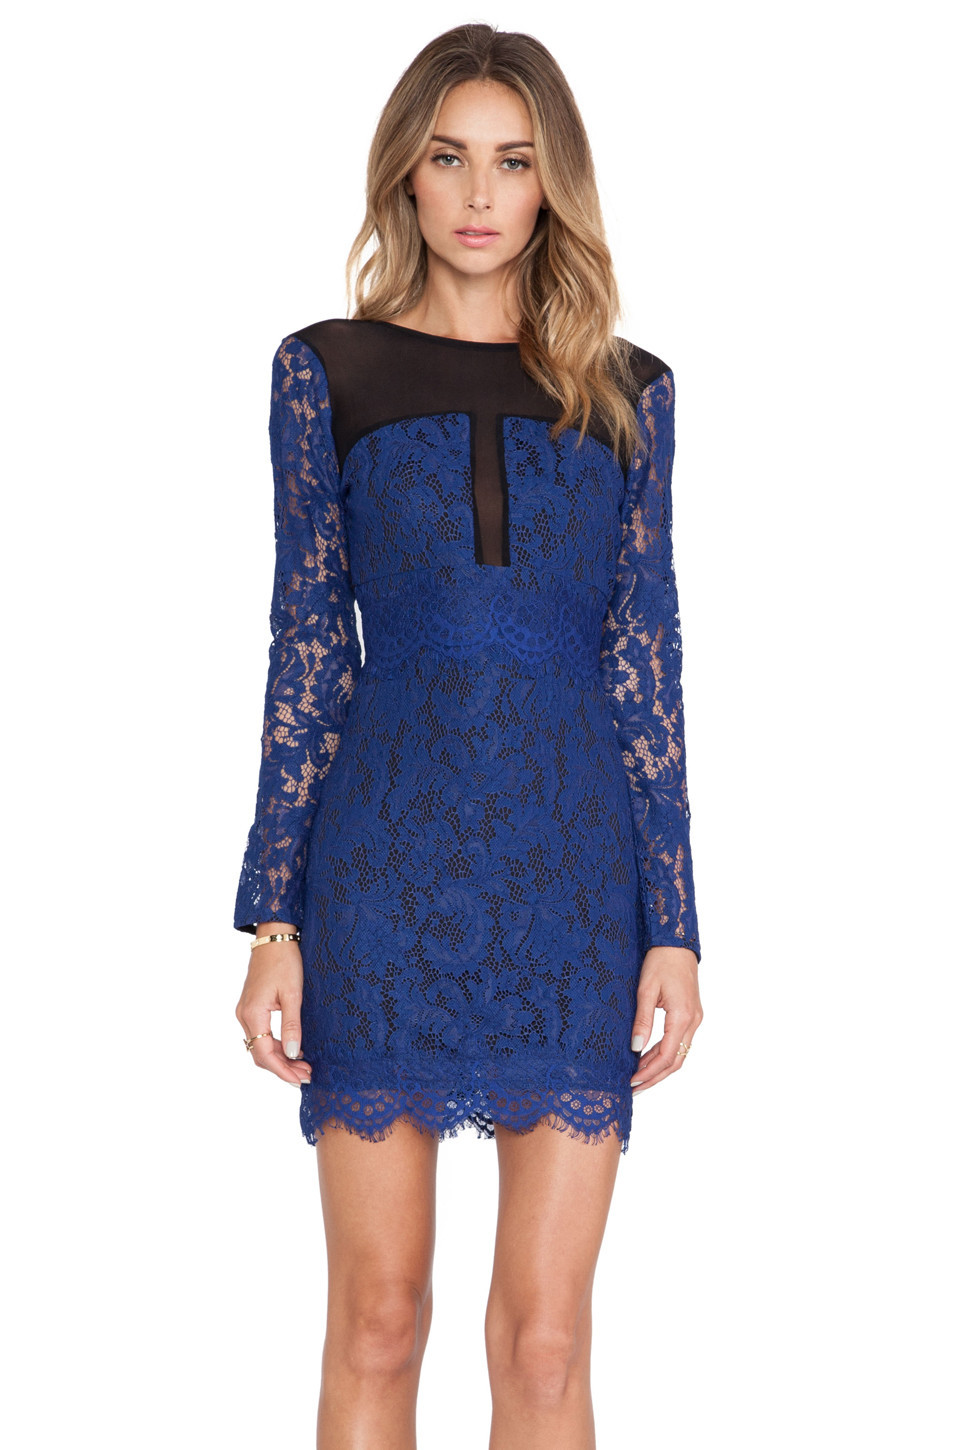 aafb1798f2ce X by NBD Gio Dress in navy - Wheretoget